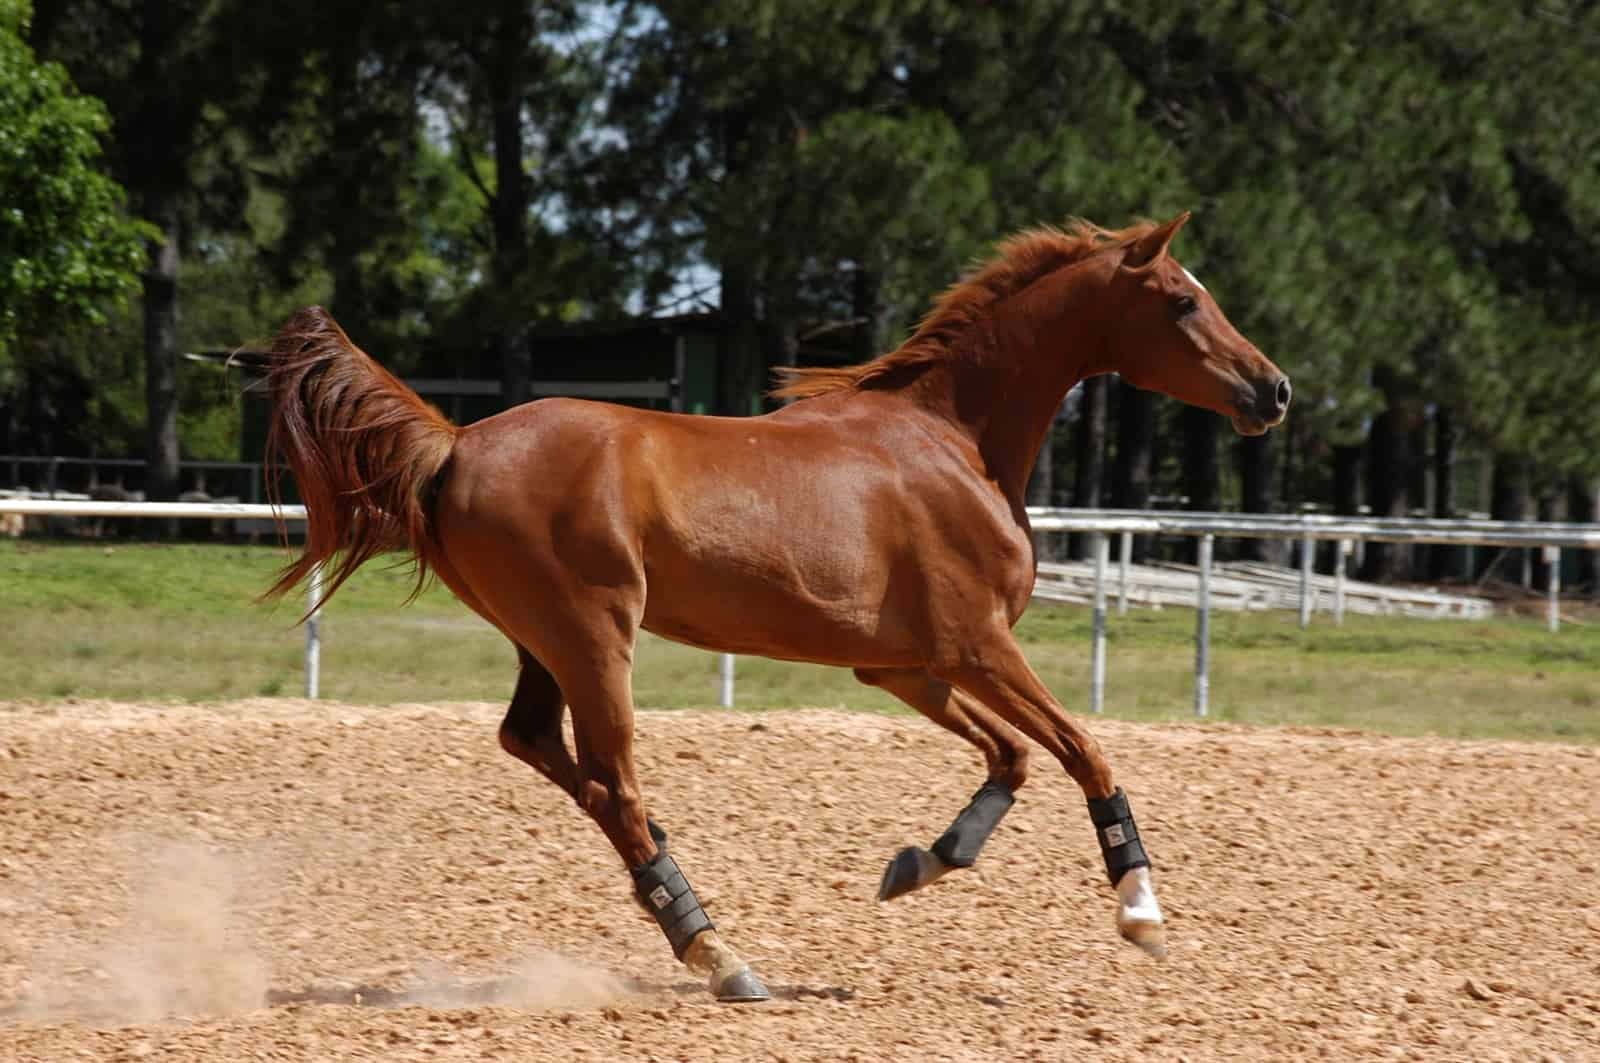 High-Starch Diets' Effects on Stress Response in Horses